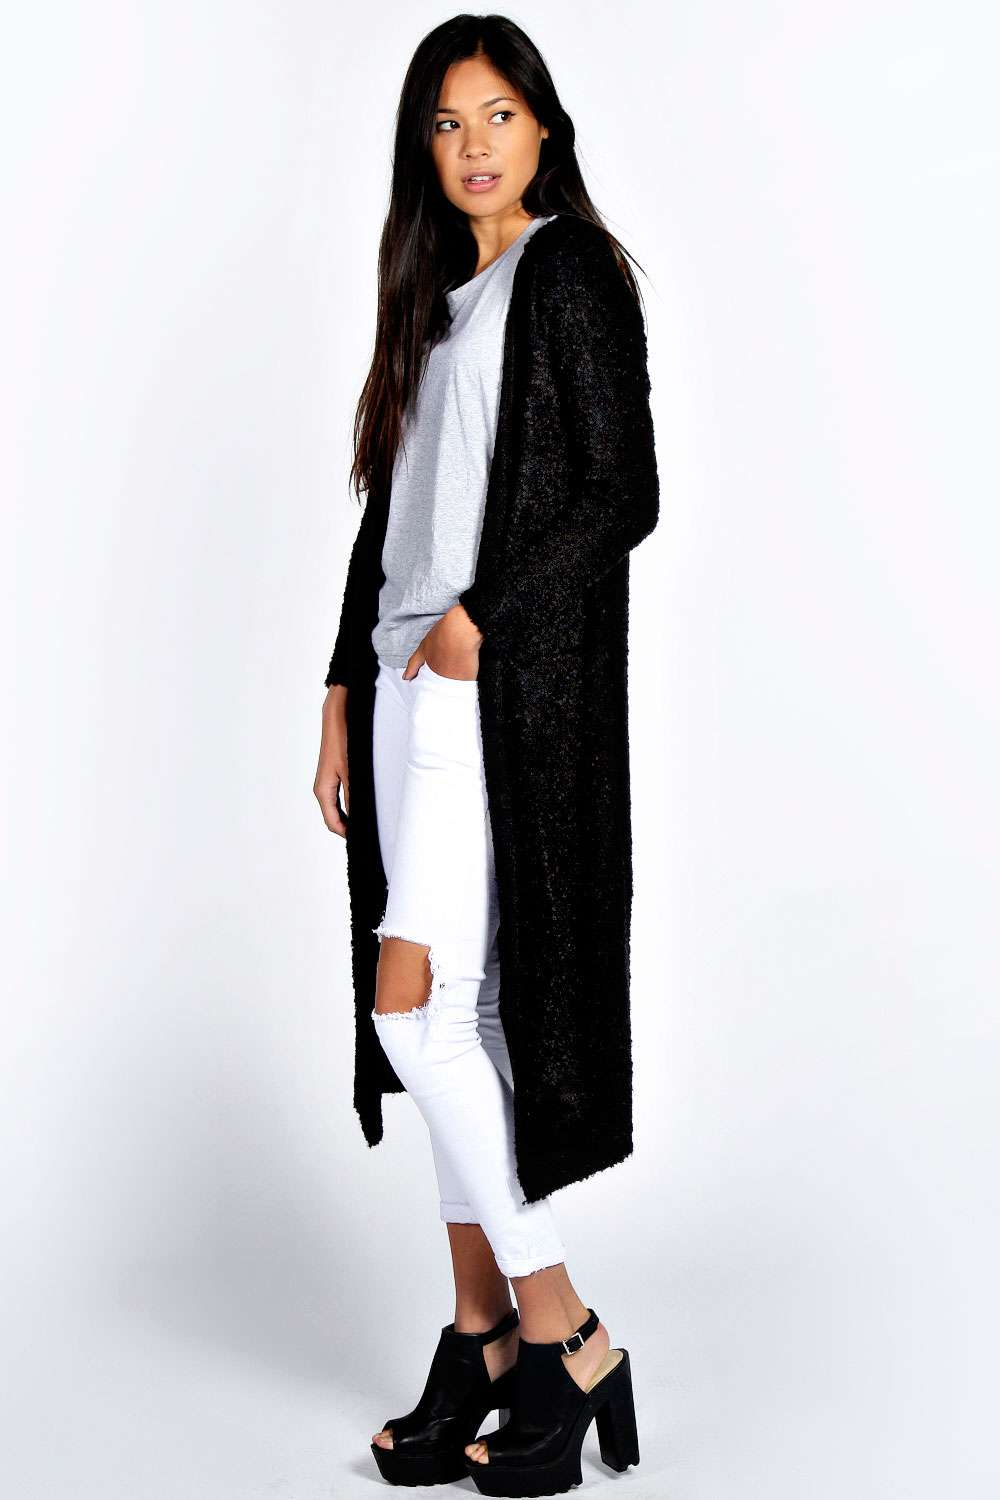 Long Cardigan Sweaters. Start a collection of long cardigans and immediately reap the style benefits. Enjoy the treat of always having something to wear, whether the dress code is casual, dressy or somewhere between.